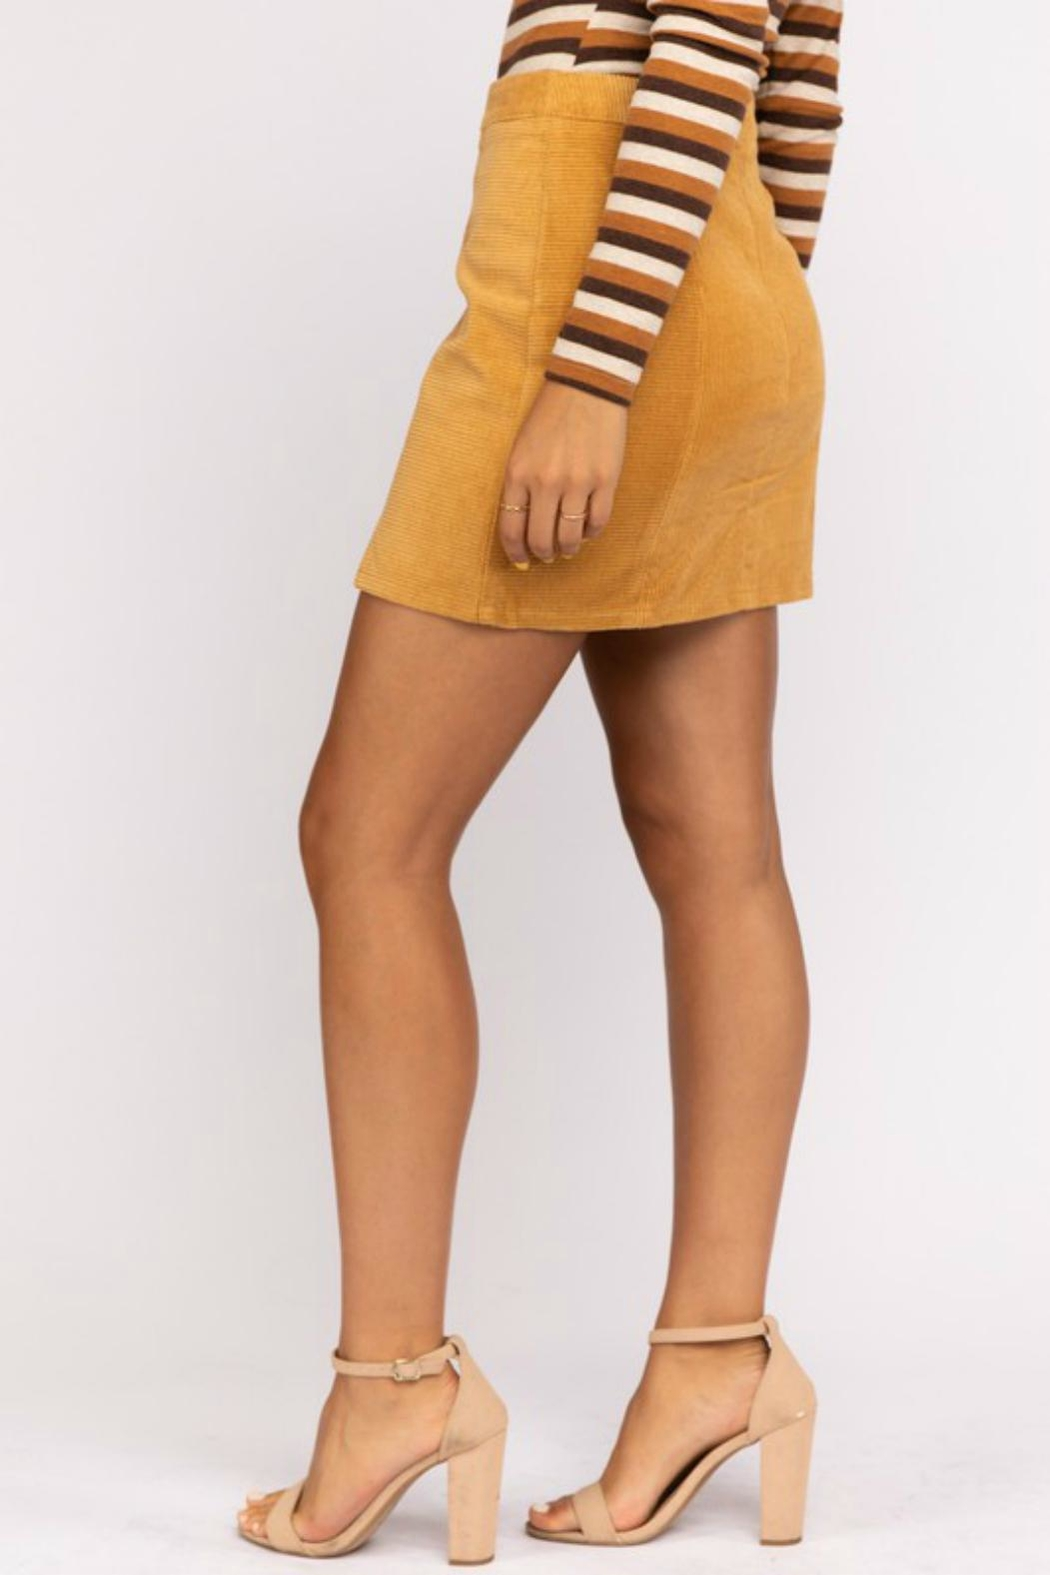 Pretty Little Things Mustard Corduroy Skirt - Front Full Image